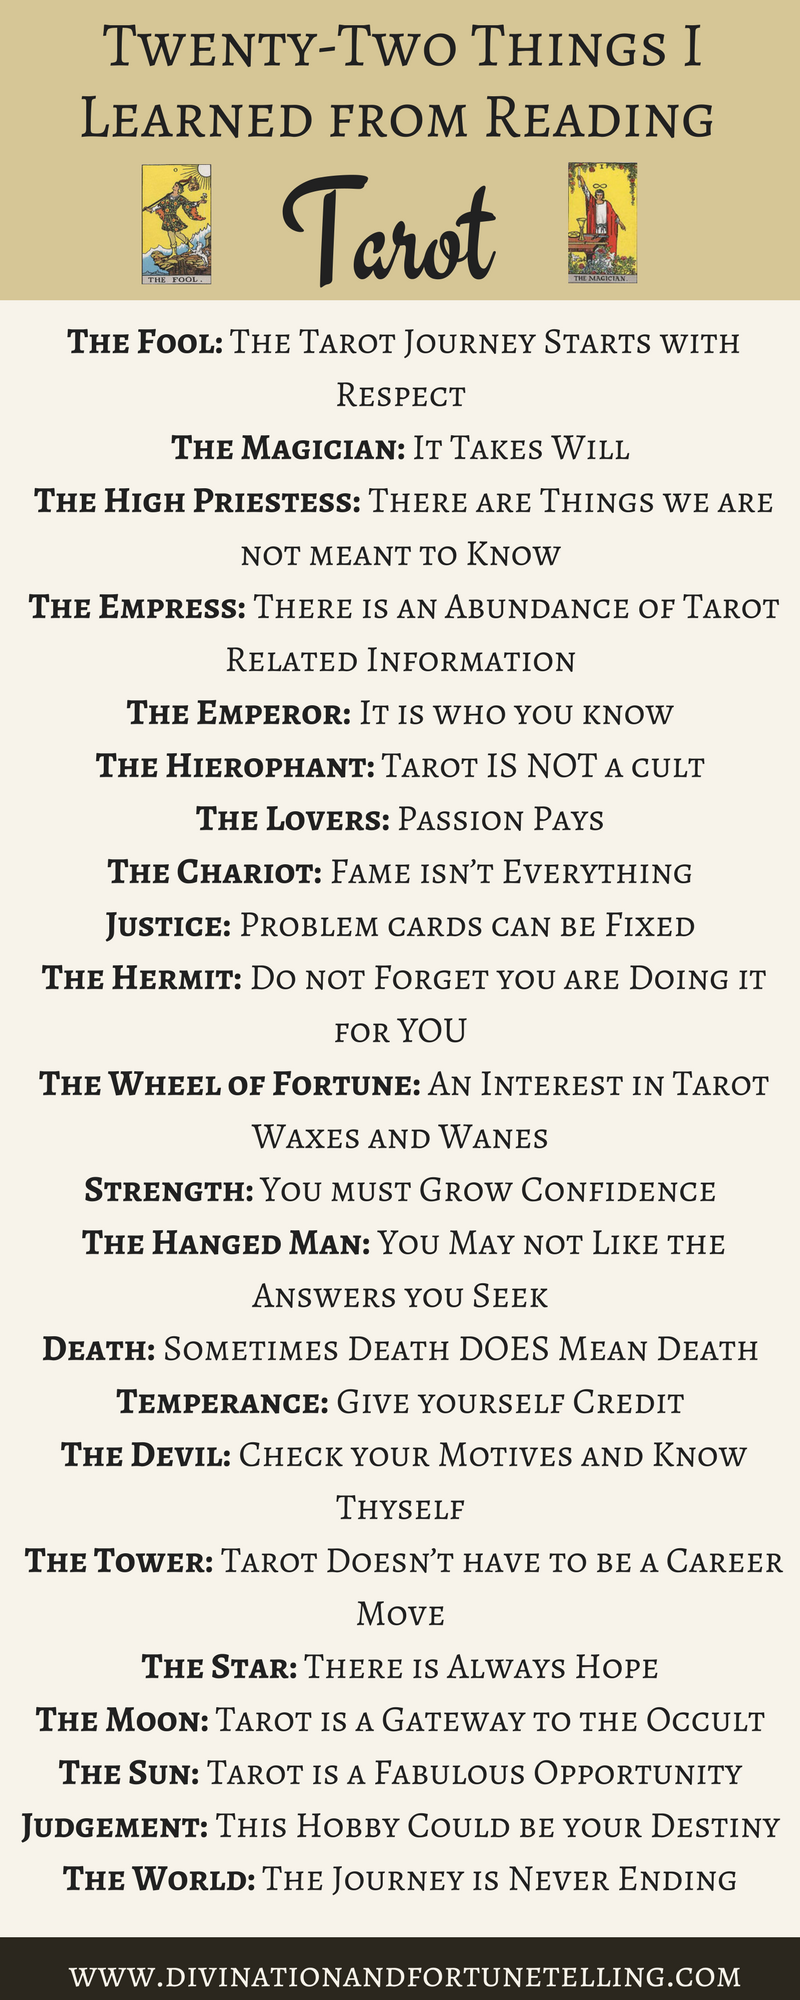 Illustration: The 22 things I learned from reading Tarot cards inspired by the major arcana. When I was a beginner, although I was exposed to divination through being a Romany Gypsy, there was a lot about Tarot which I didn't understand. Now I am used what I have learned to give tips to other would be fortune tellers who are just learning how to read the cards whether thats to make predictions about love, and money or for healing. Cards used in this image are the rider waite smith tarot deck.